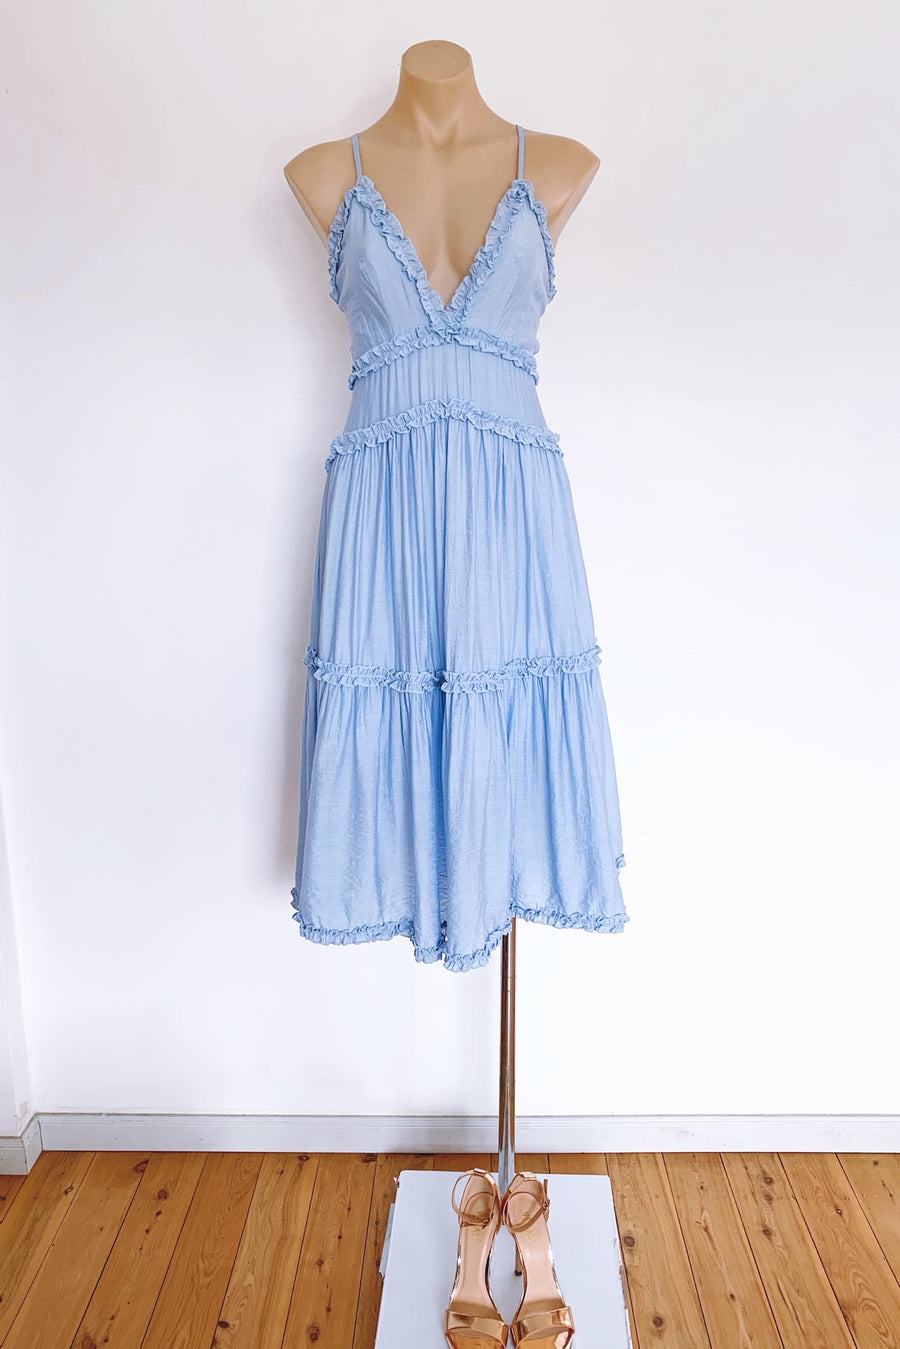 Willow Dress in Blue for $85.00